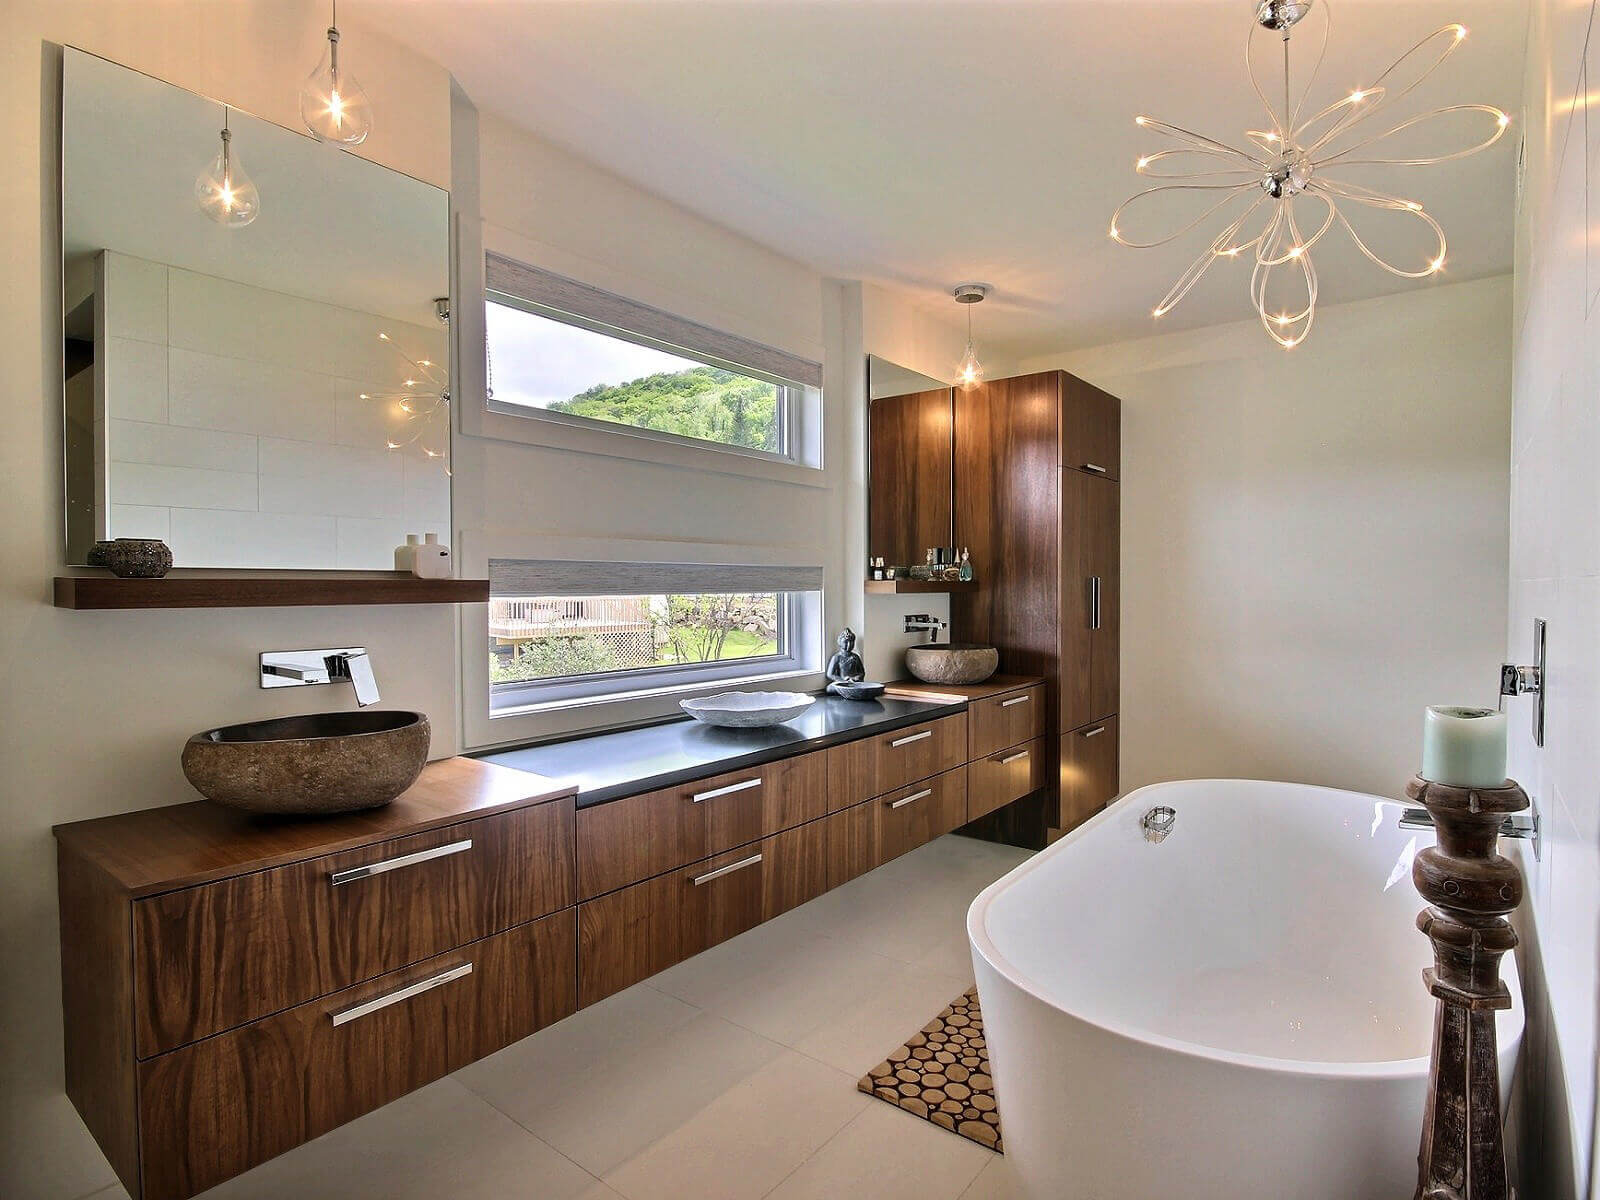 Contemporain cuisines bernier for Salle de bain moderne houzz